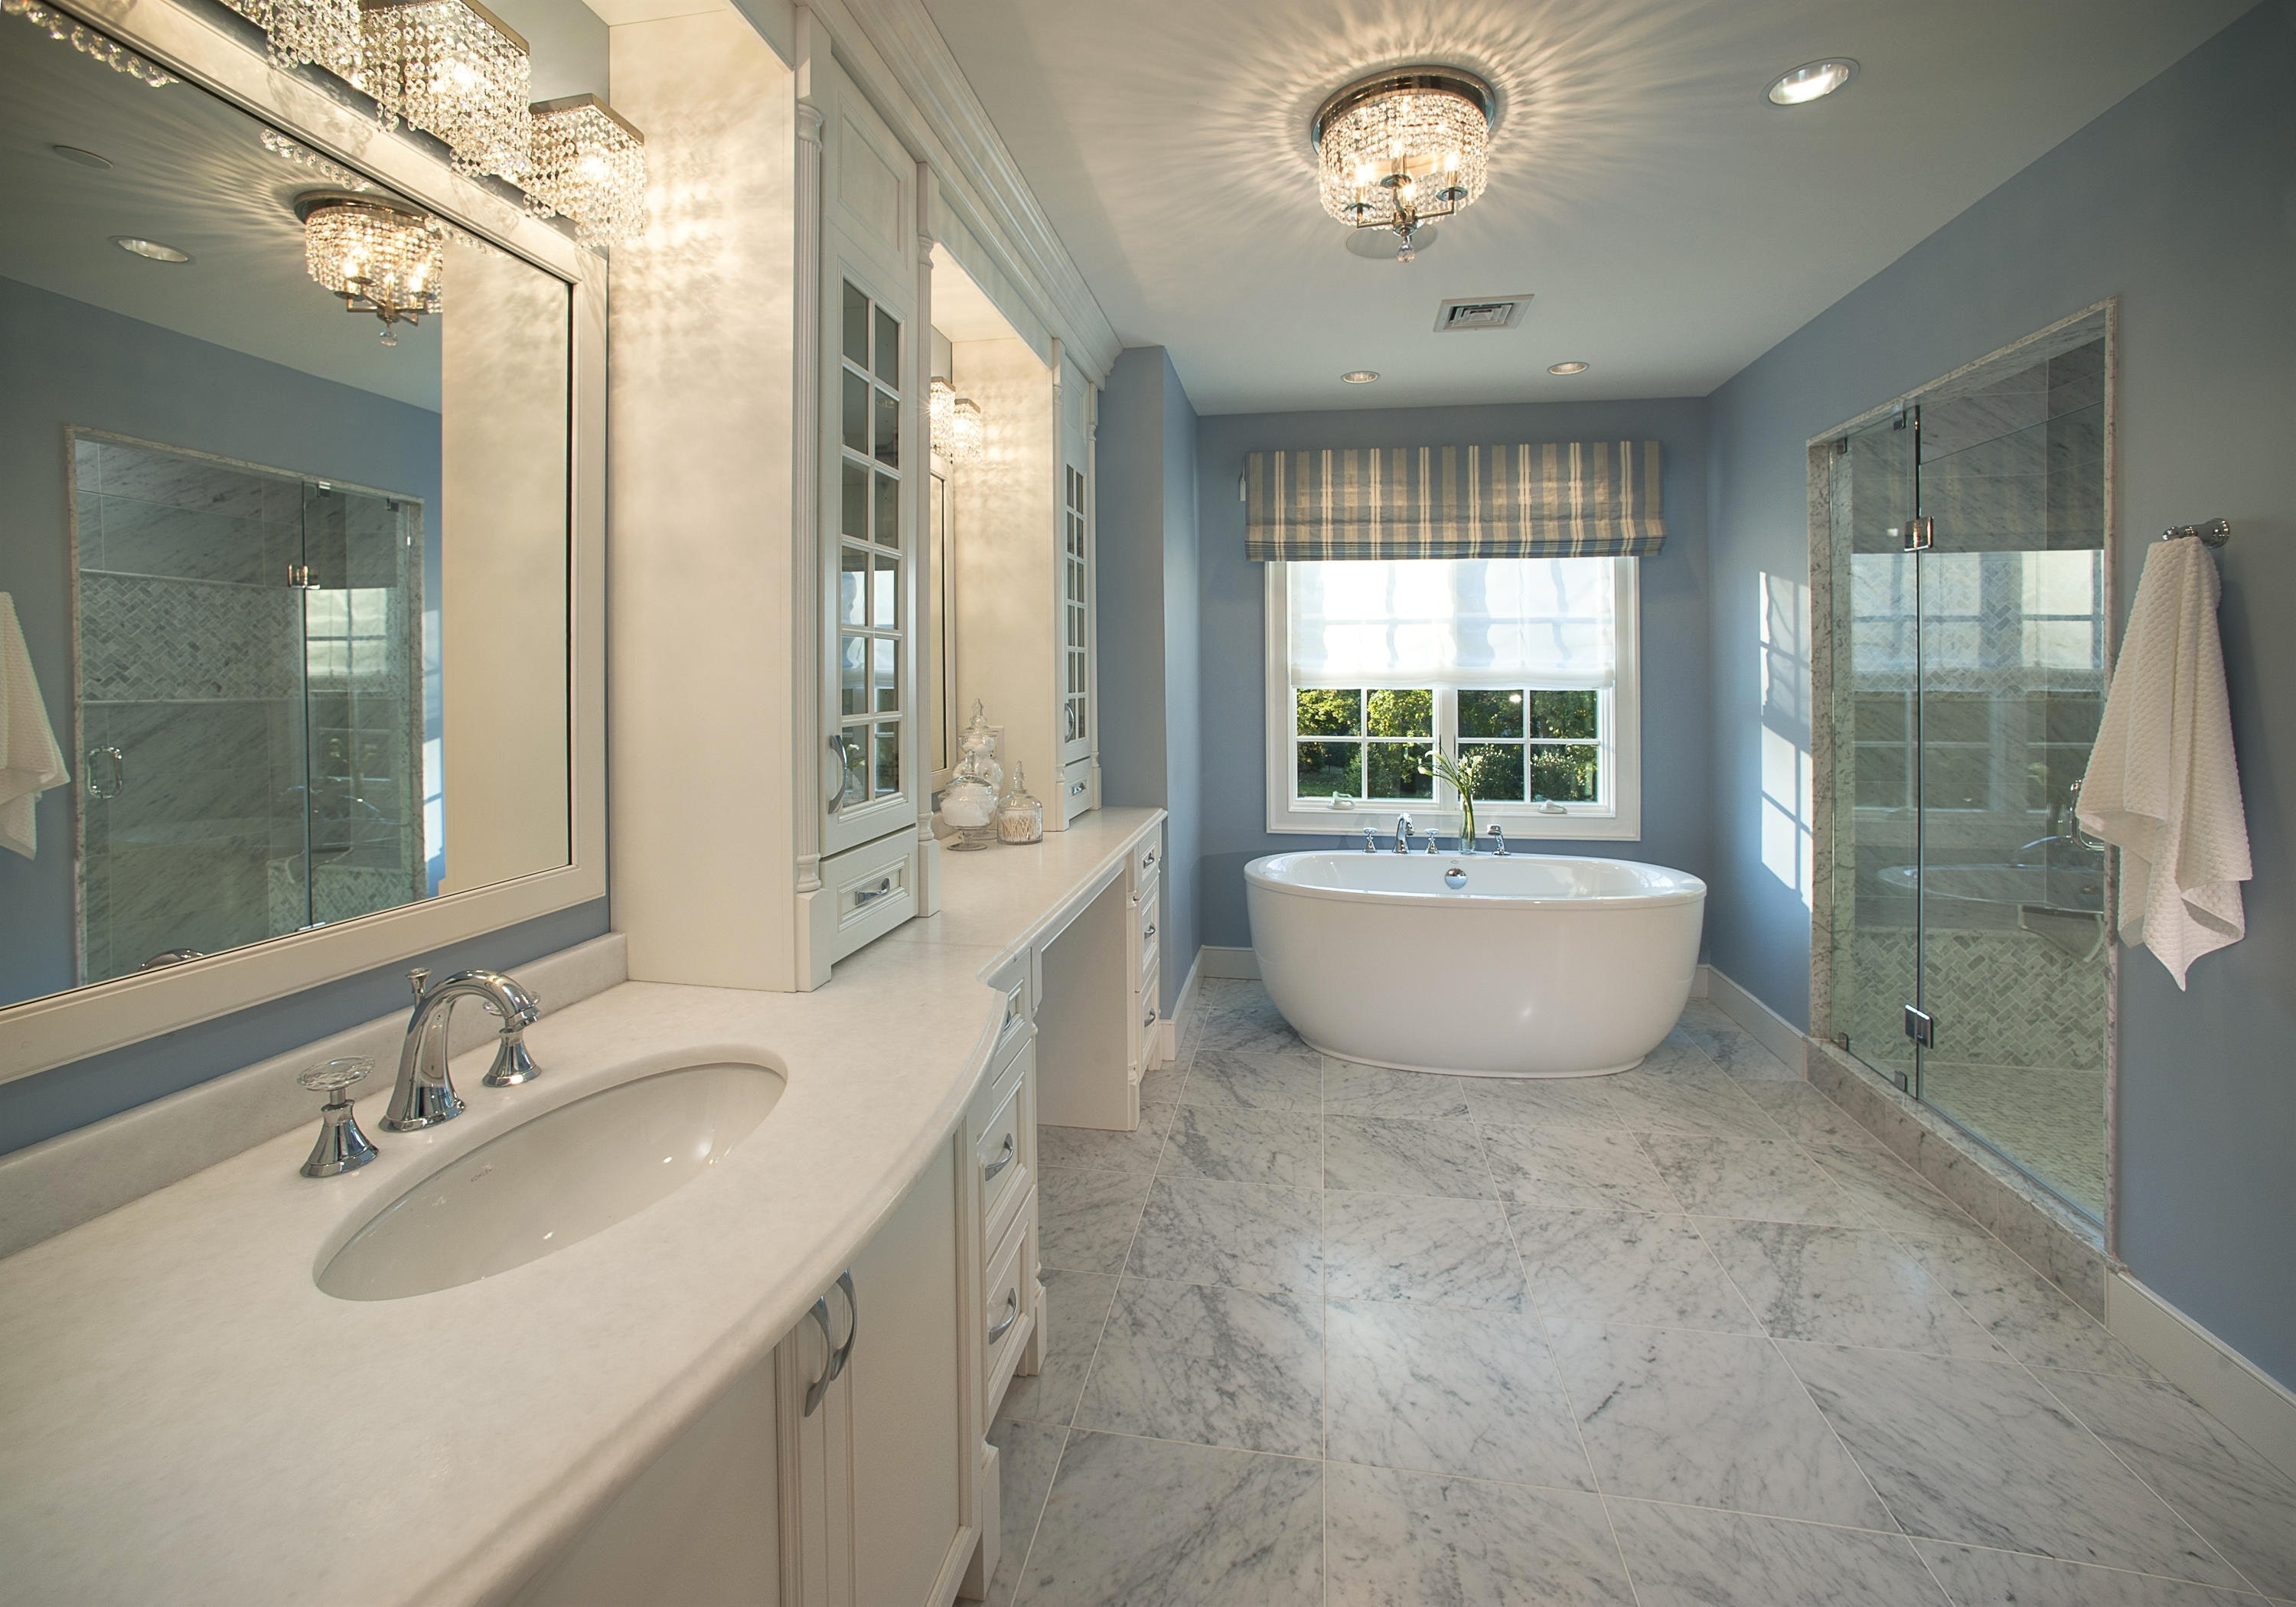 Well Known Bathroom Ceiling Light Ideas And Paul Neuhaus Bubbles Led Lights Of Pertaining To Chandelier Bathroom Ceiling Lights (View 15 of 15)